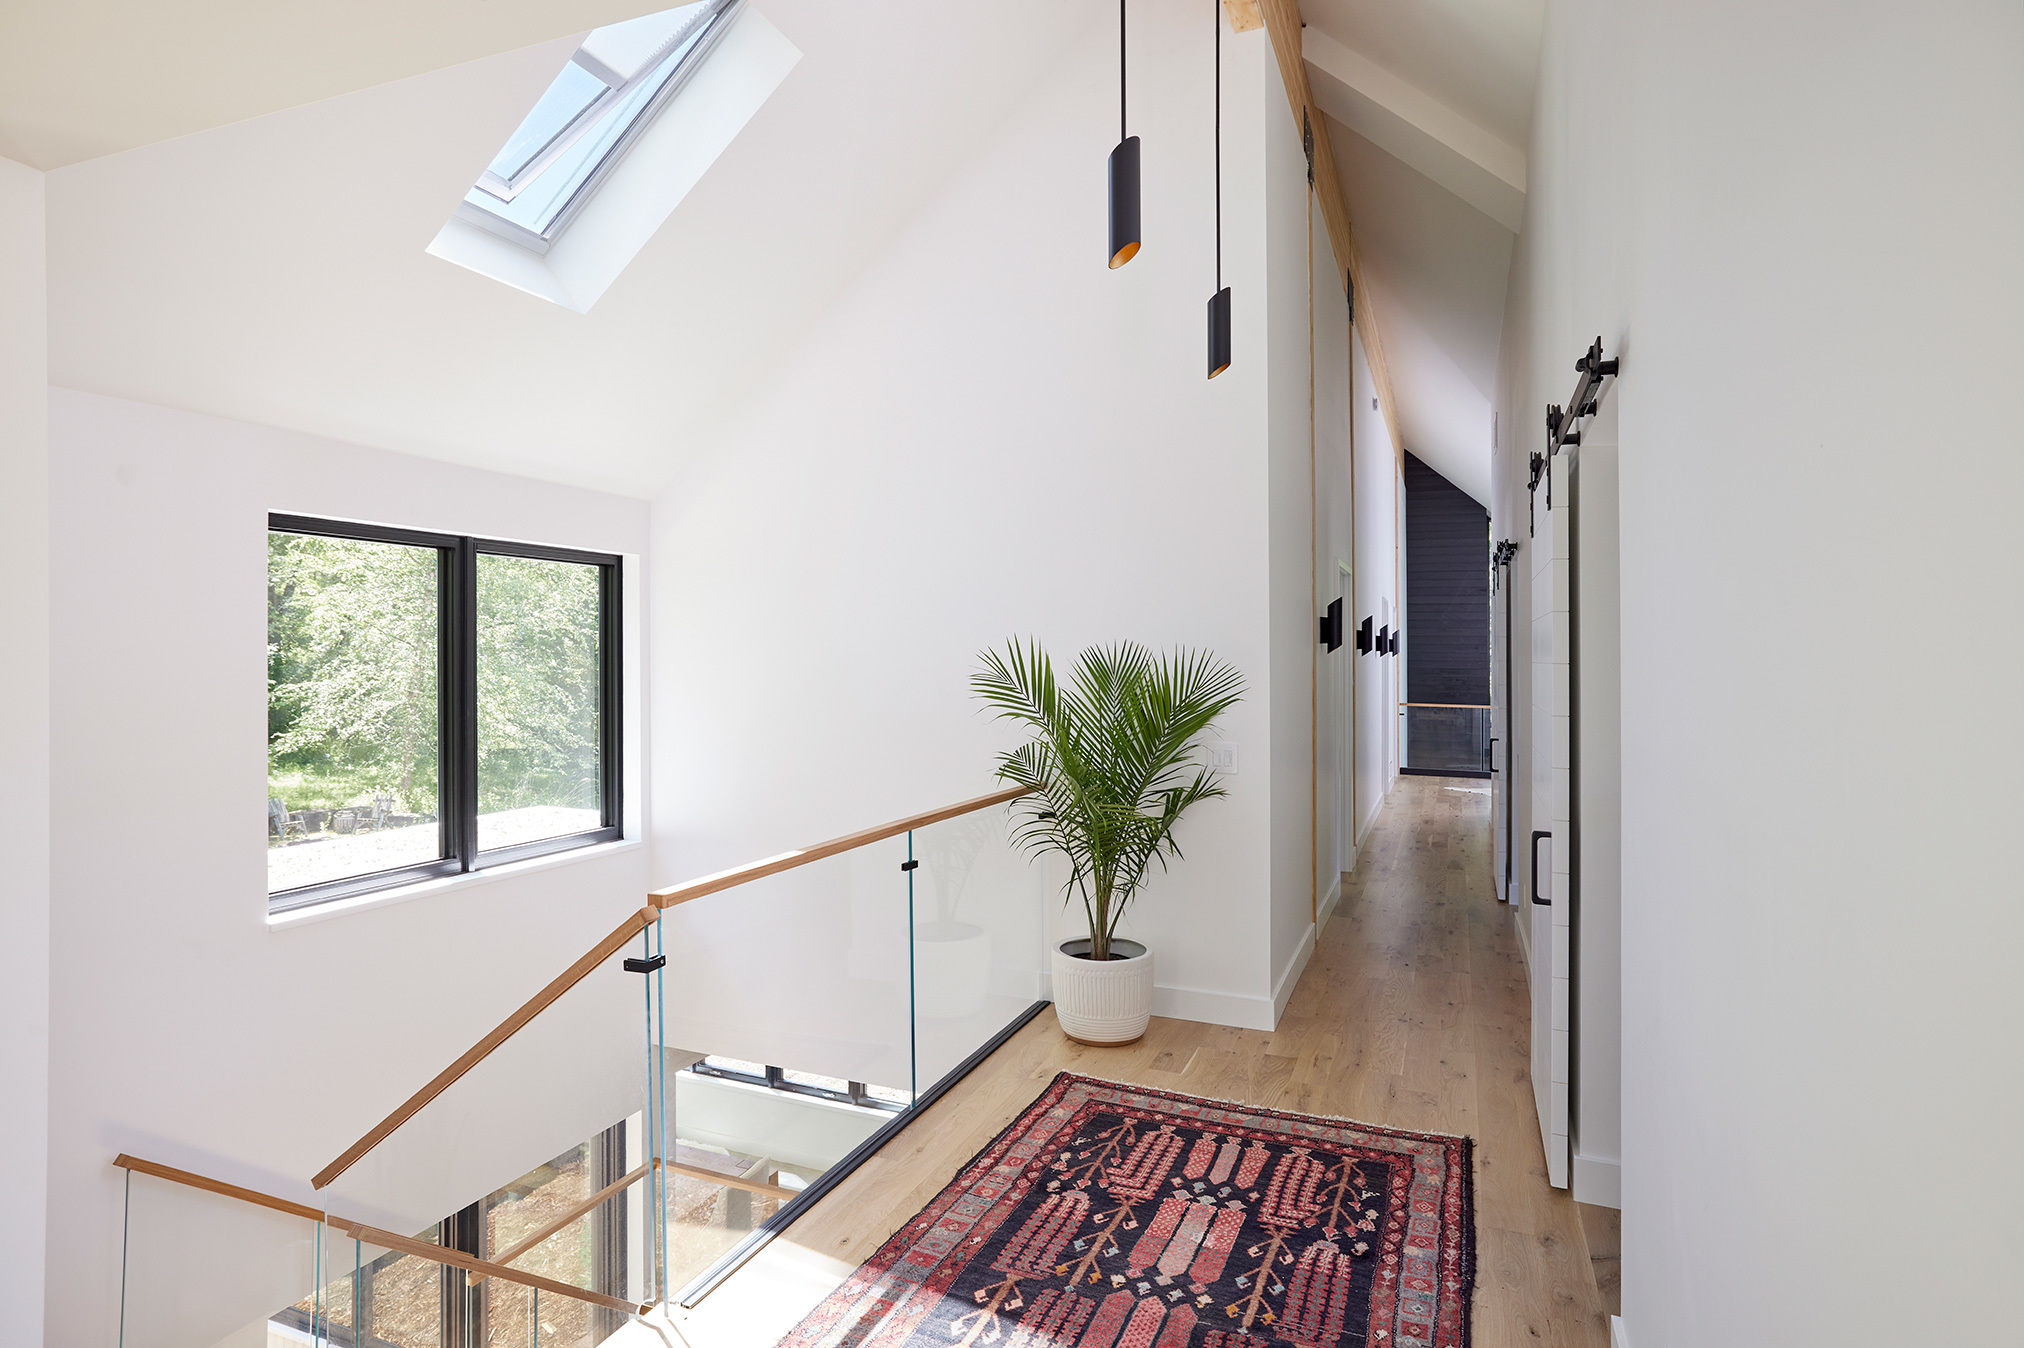 A minimalist stairwell brightened by a skylight